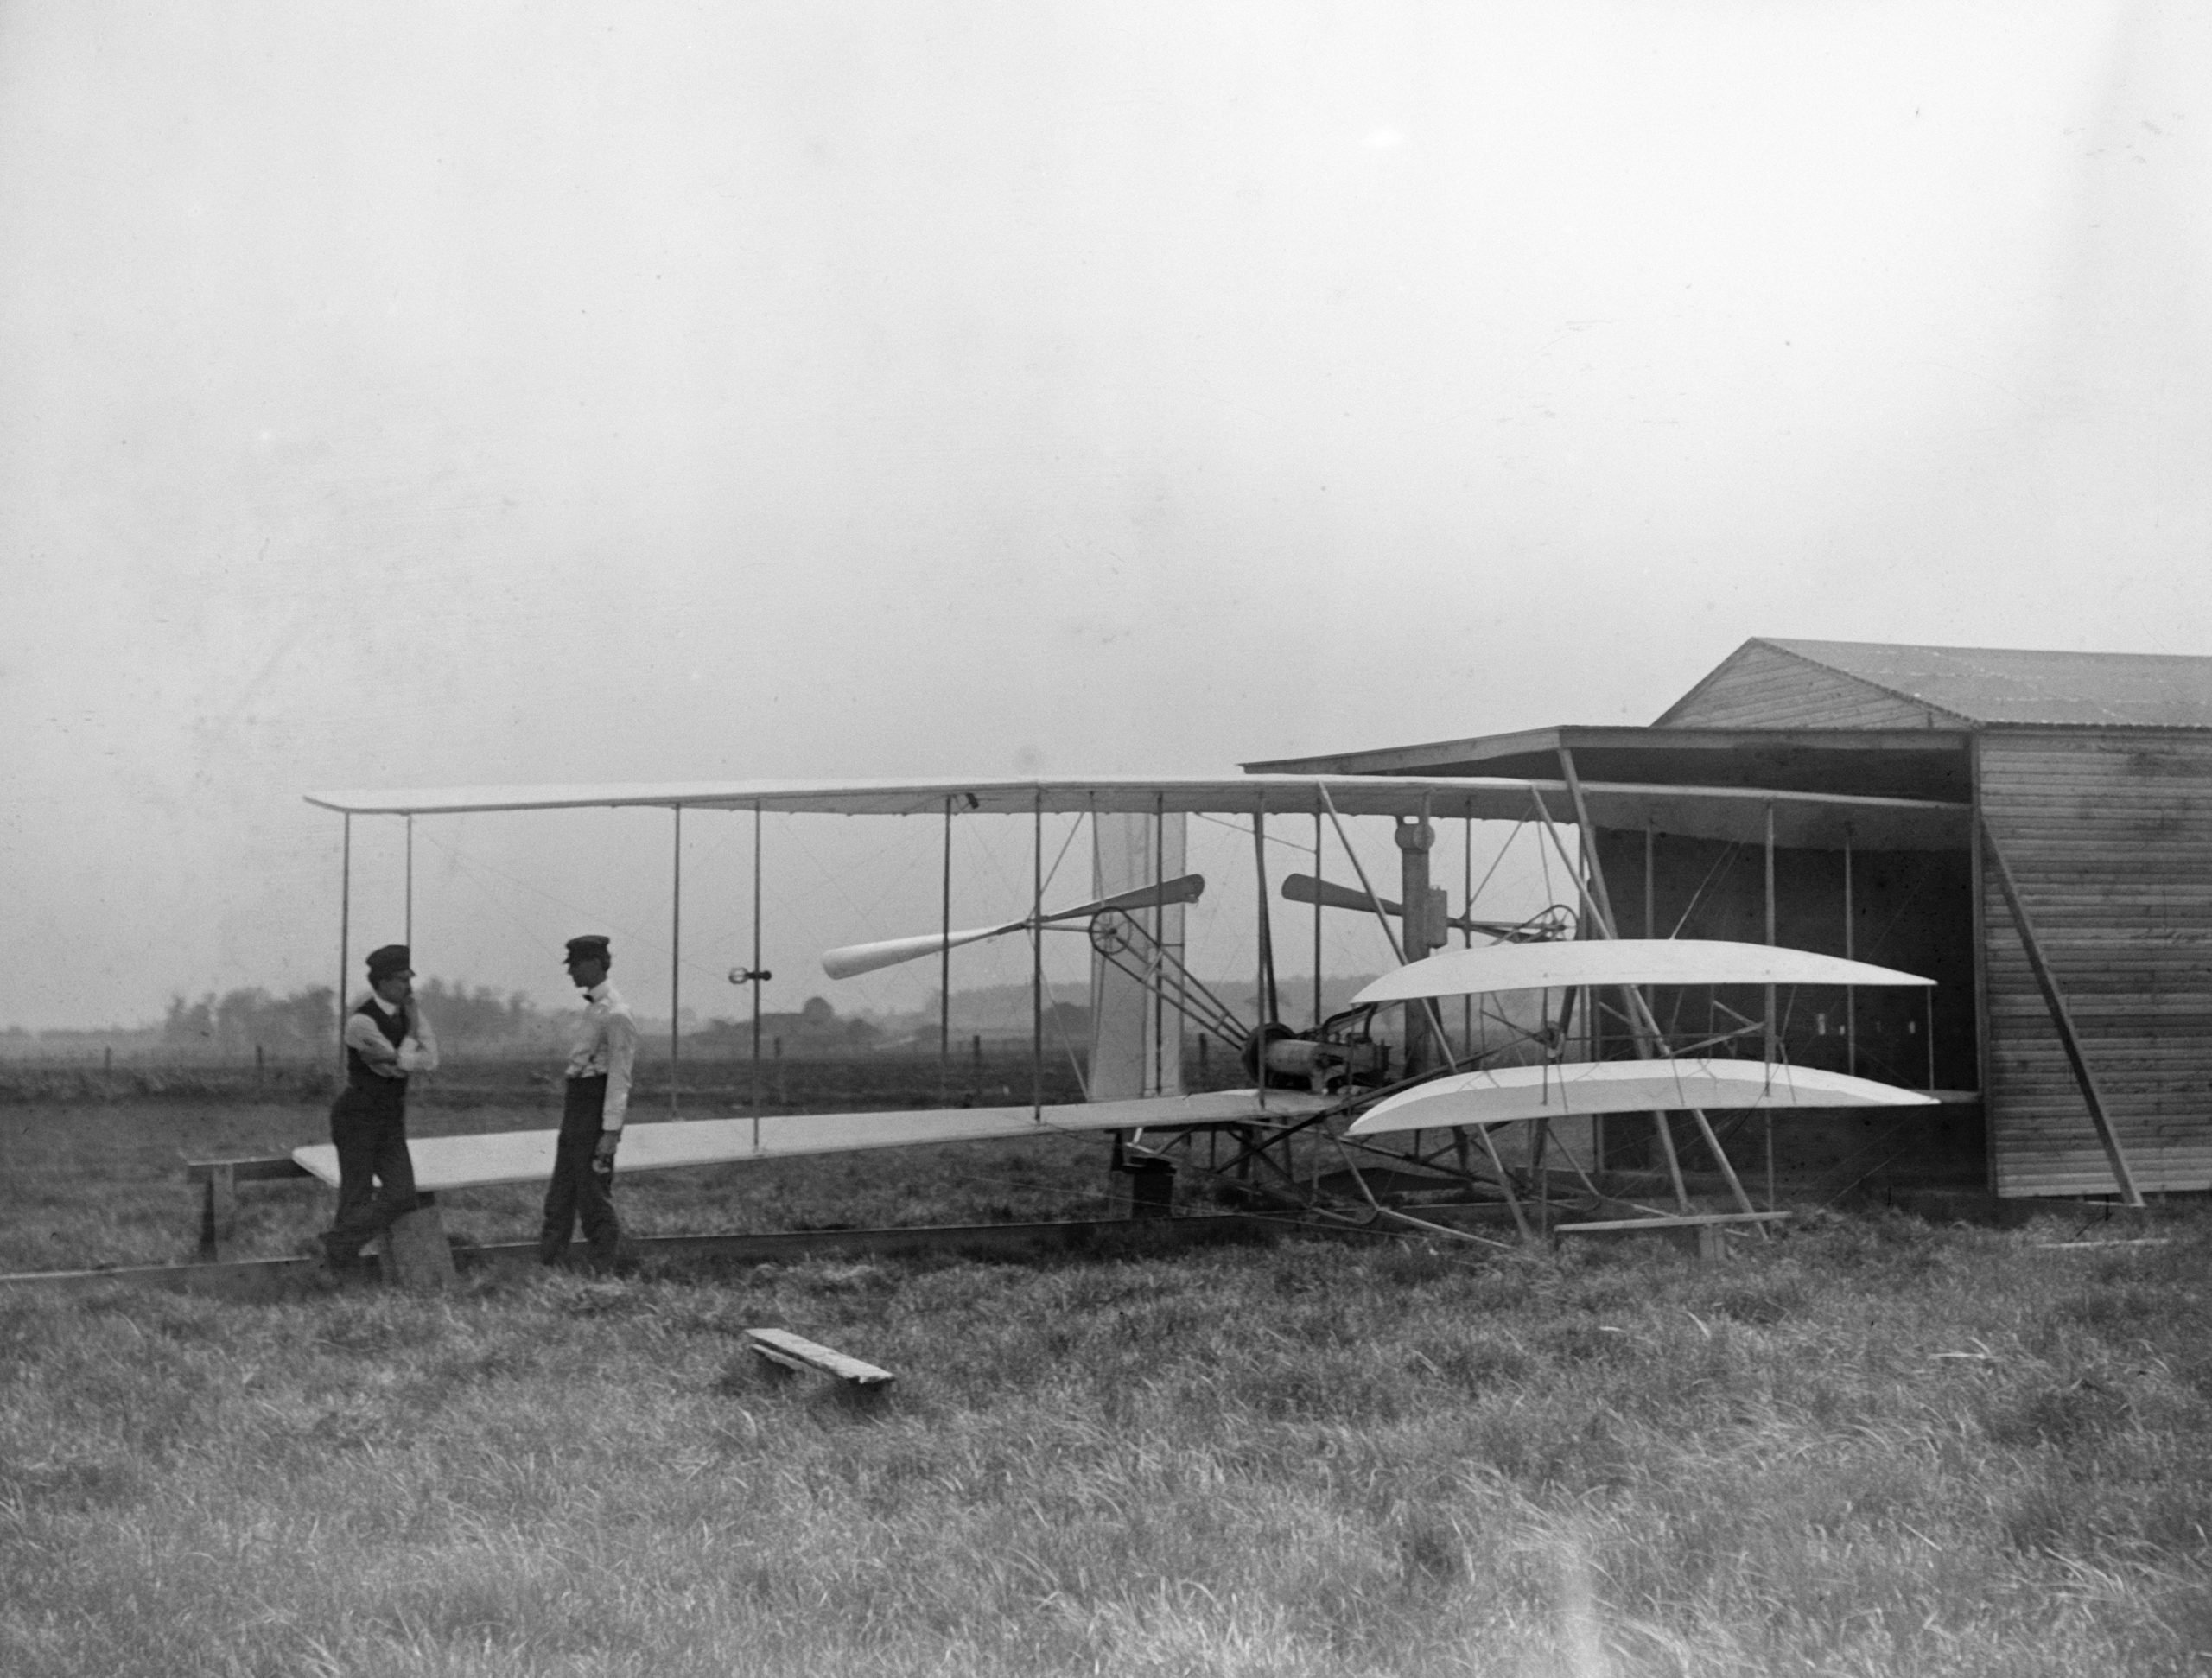 Wilbur and Orville Wright with Their 2nd Powered Machine